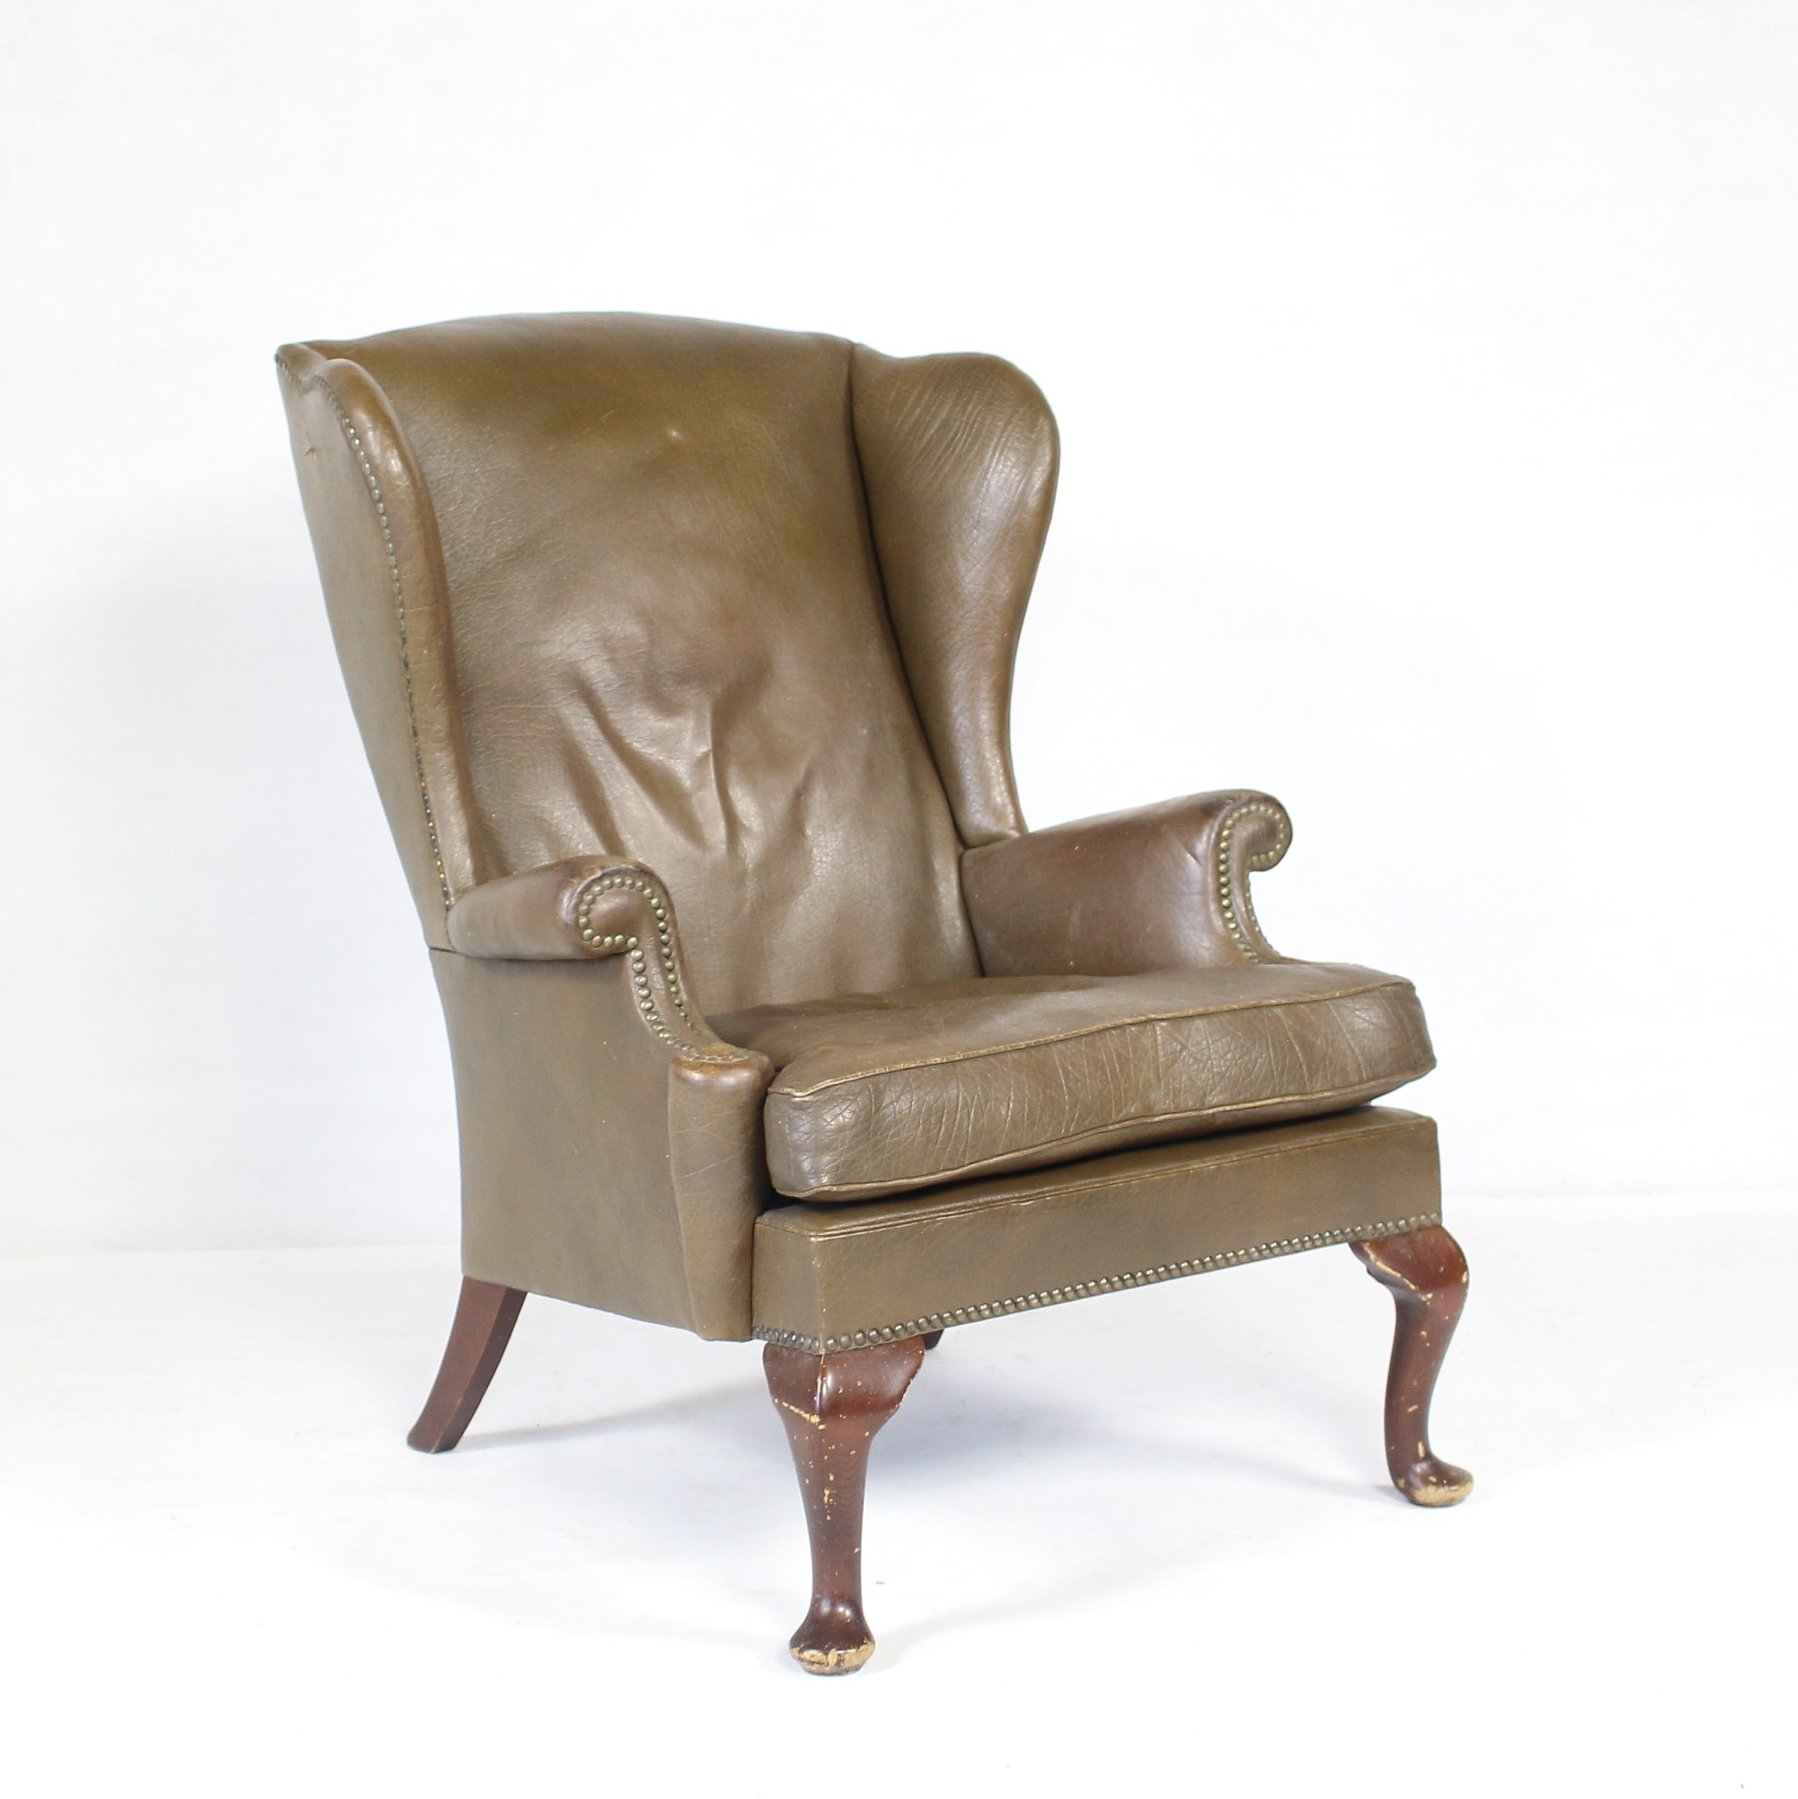 Magnificent Queen Ann Style Vintage Leather Lounge Chair By Parker Knoll Theyellowbook Wood Chair Design Ideas Theyellowbookinfo